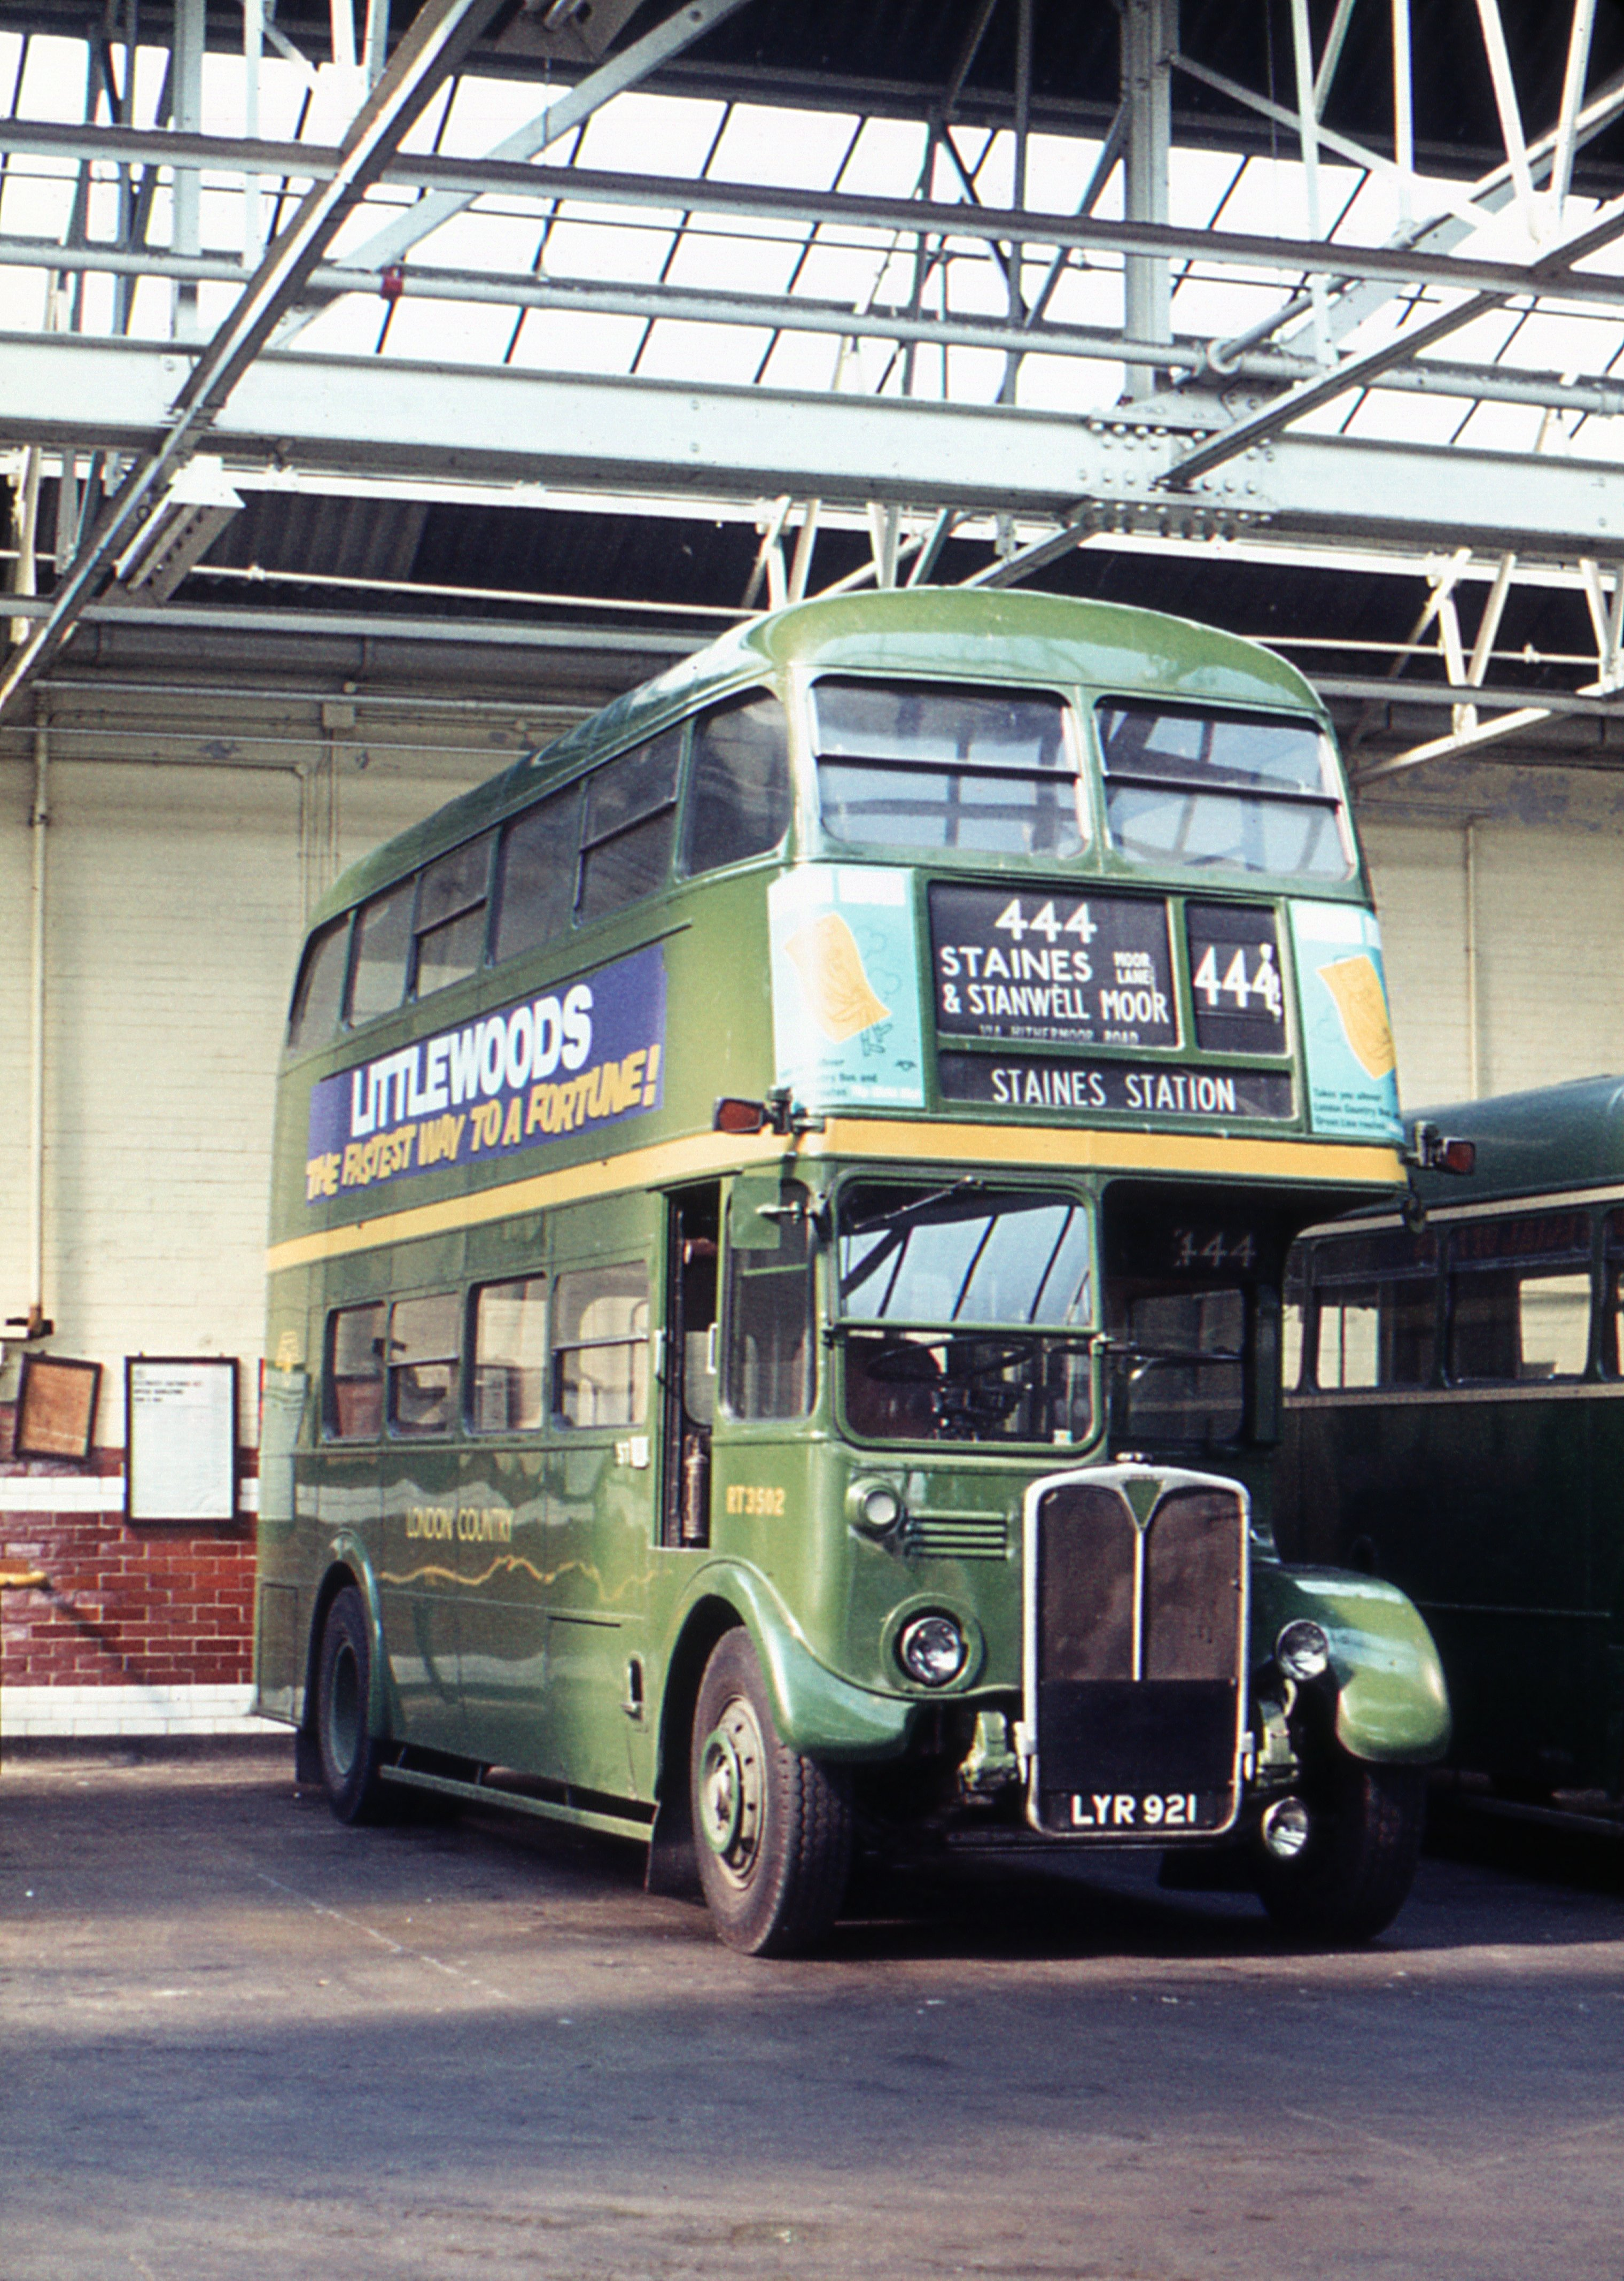 File:London Country bus RT3502 (LYR 921), 1972 (1).jpg ...